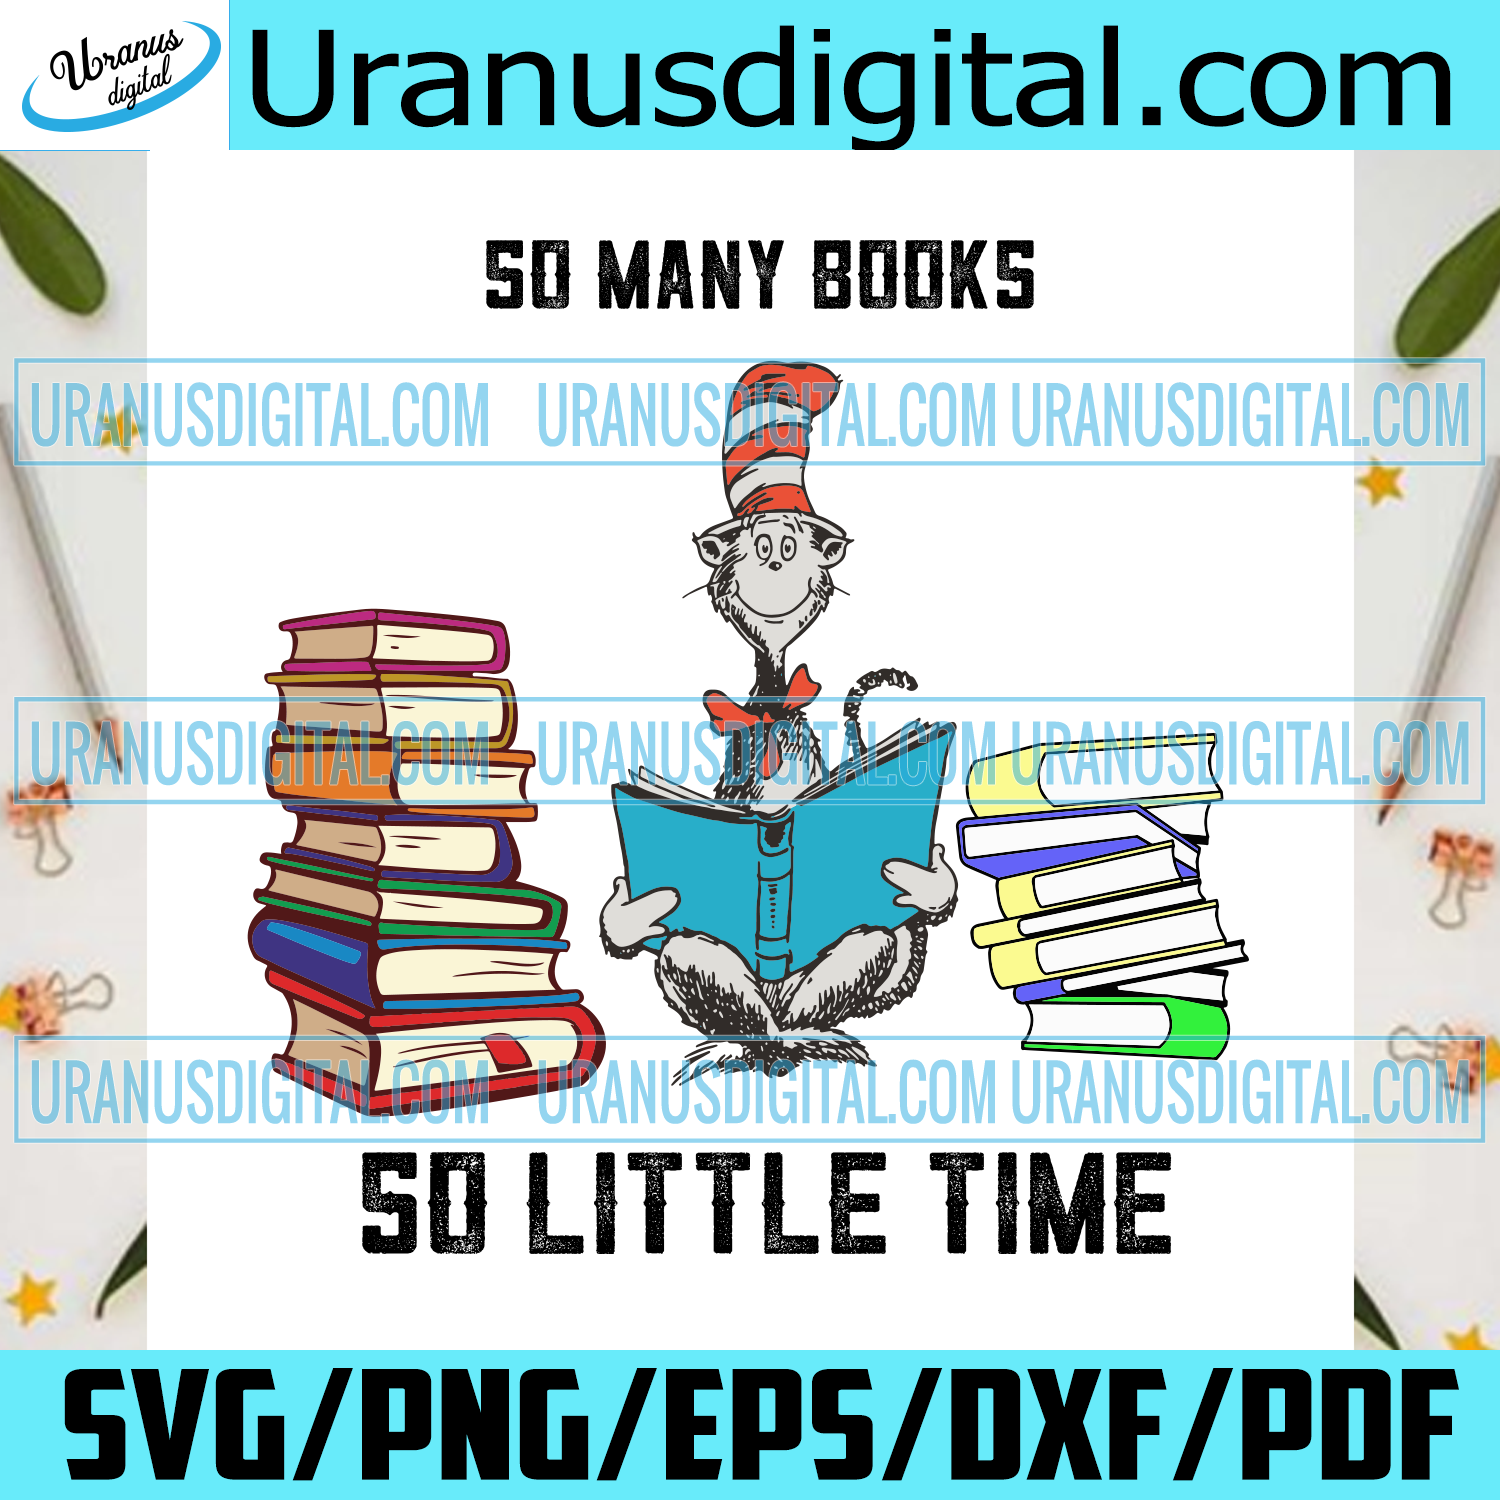 So Many Books So Little Time Svg, Dr Seuss Svg, School Svg, Back To School Svg, Books Svg, Teacher Svg, Students Svg, Dr Seuss Cat Svg, Dr Seuss Gifts, Cat In The Hat Svg, Dr Seuss Shirt, Thing 1 Thing 2 Svg, Love Reading